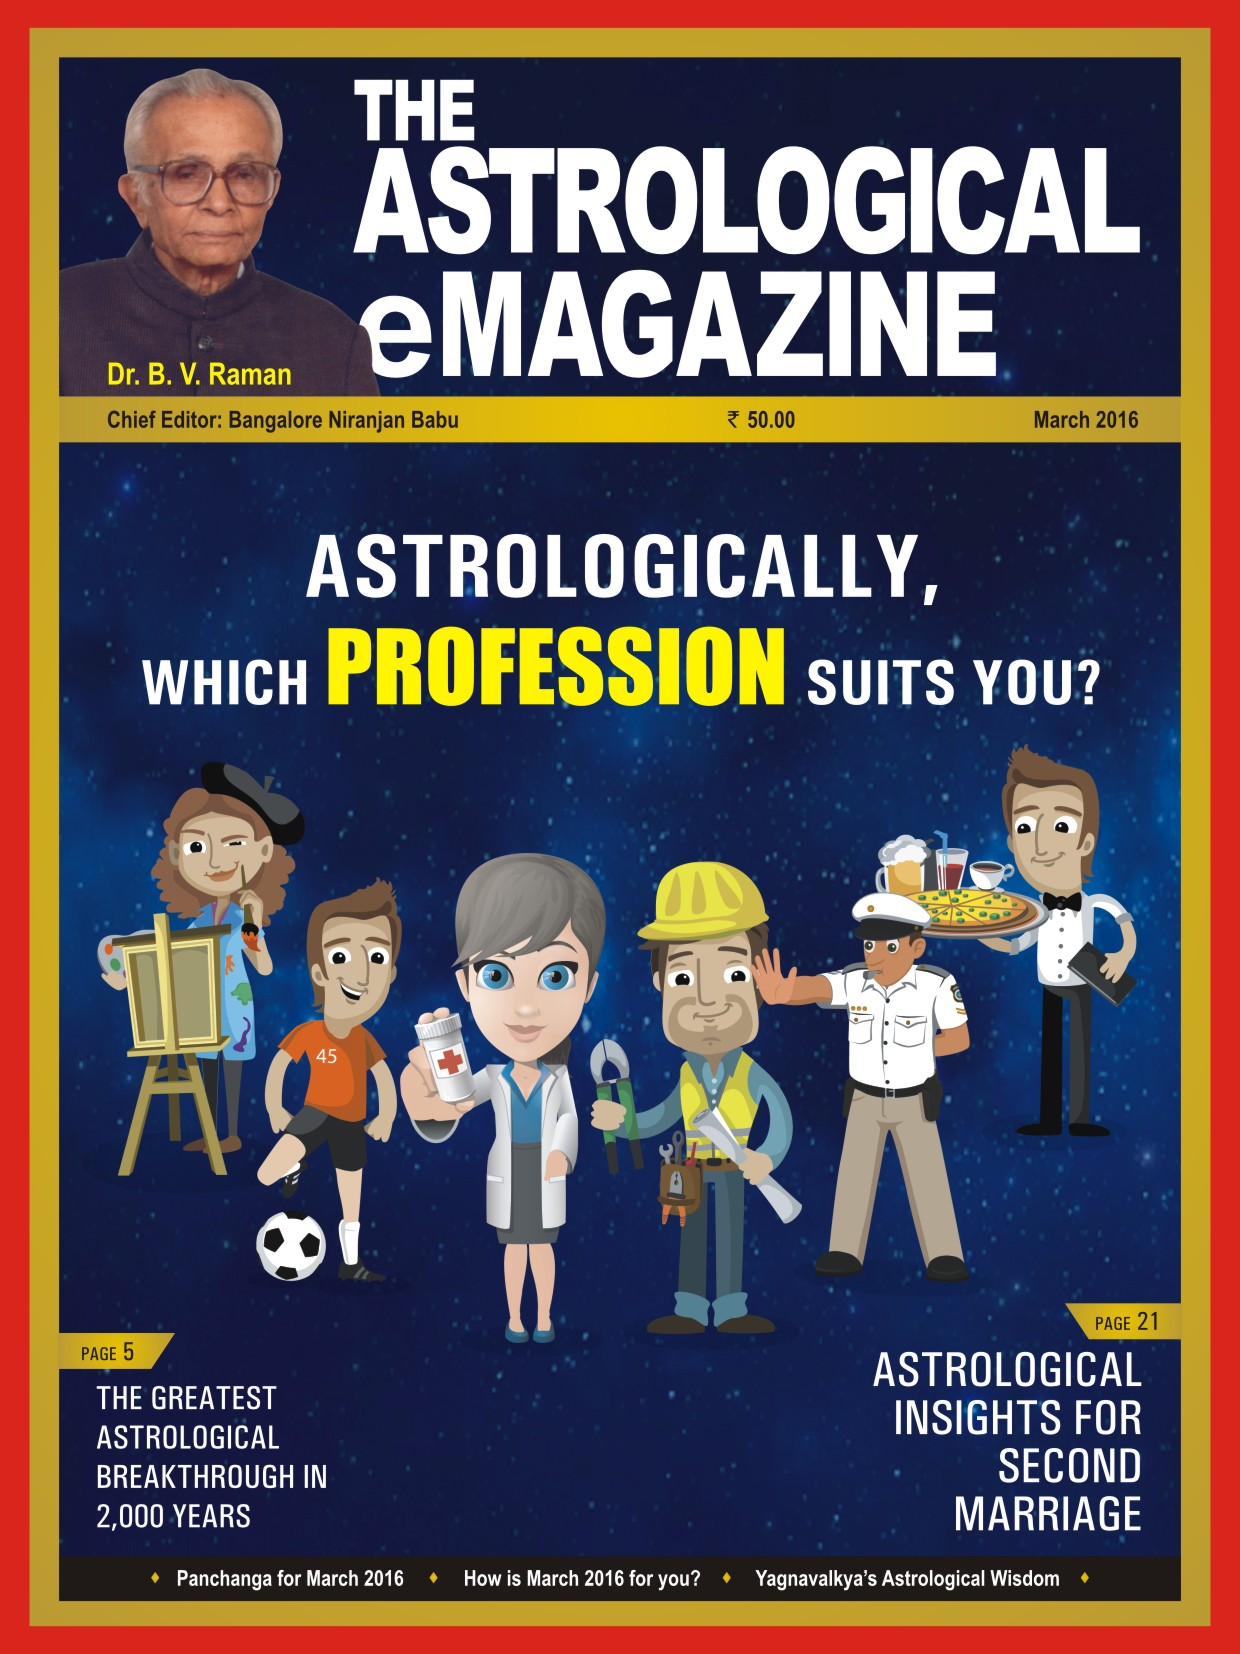 The Astrological eMagazine January 2016